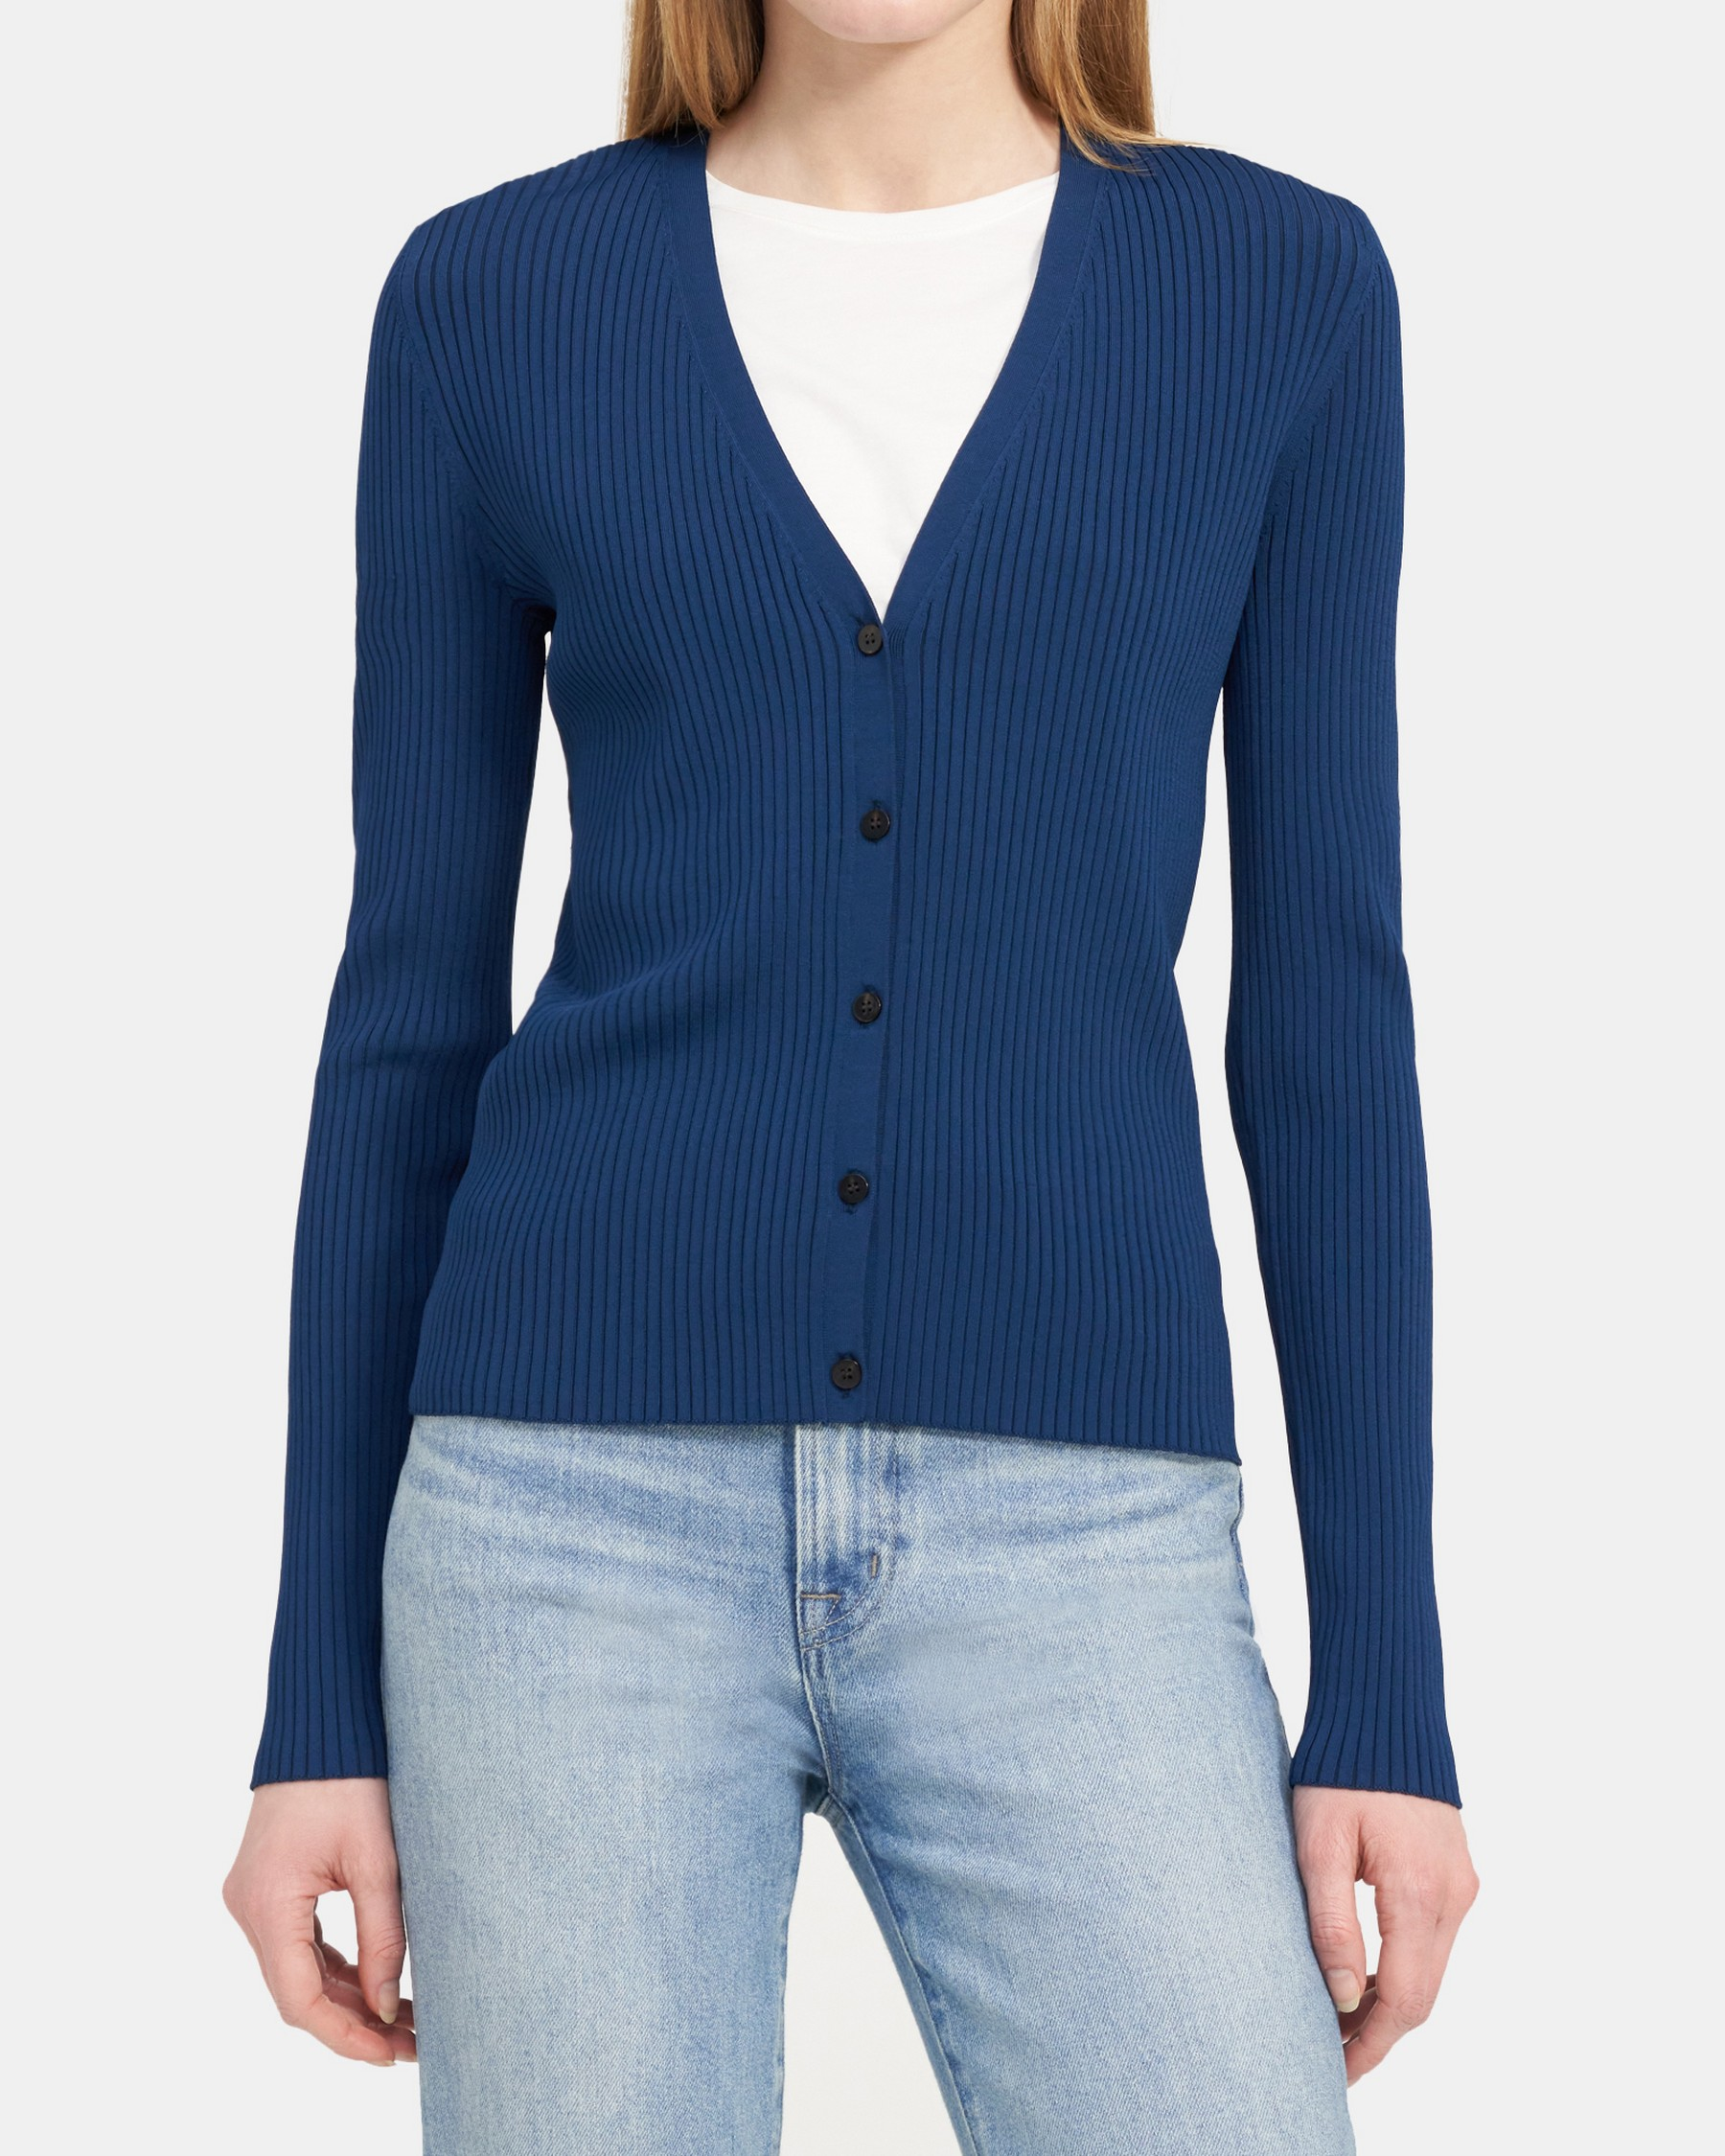 Theory Cropped Ribbed Cardigan in Stretch Knit